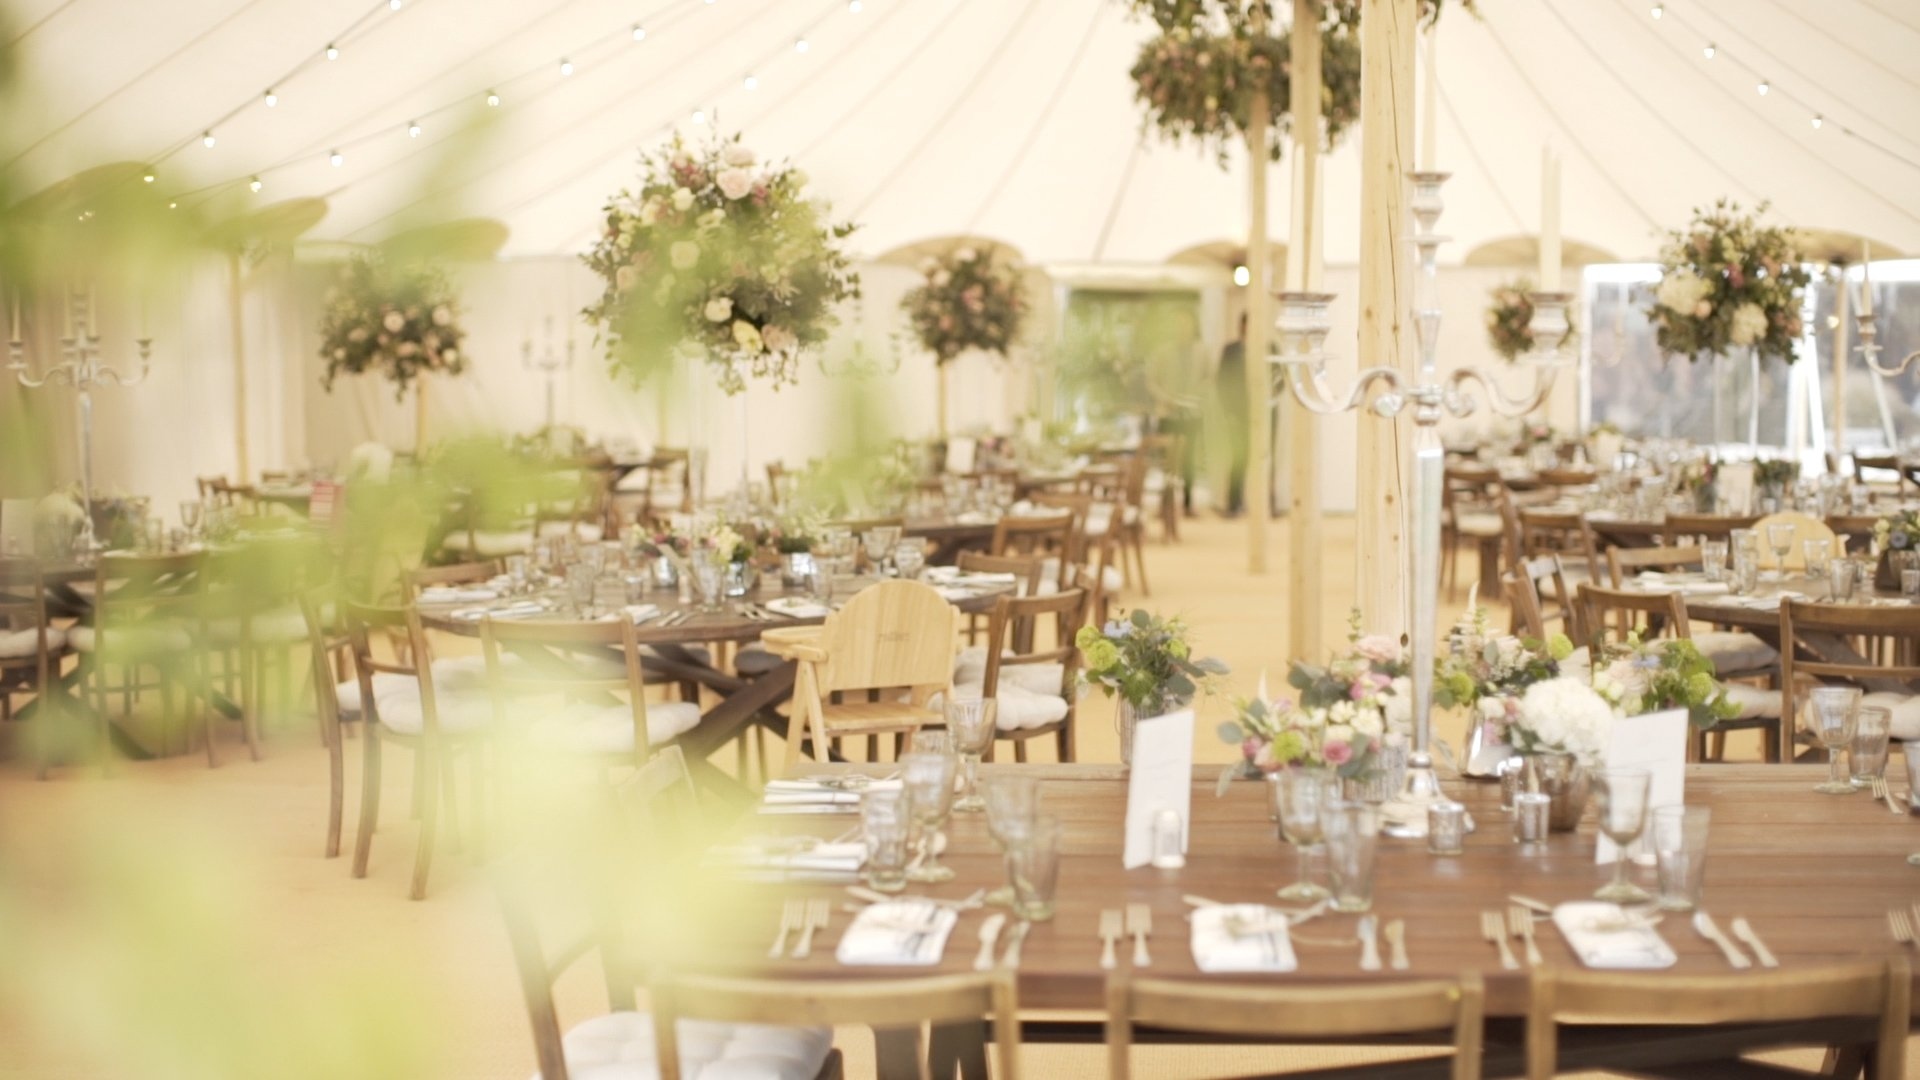 Cotswold wedding video Archives - Mark Shipperley Films